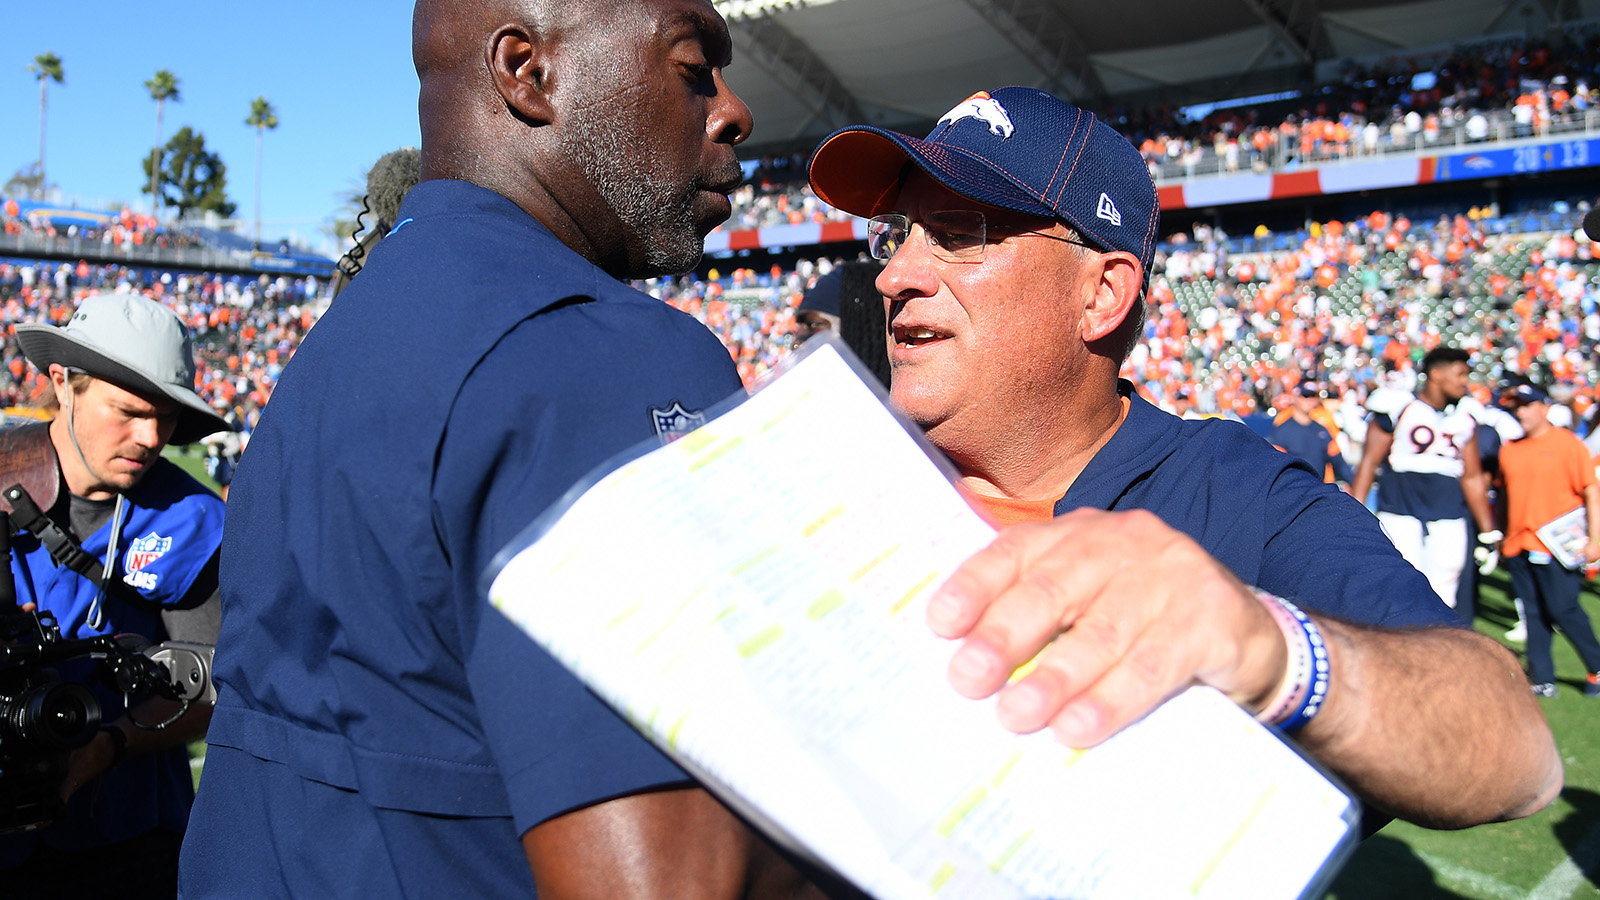 Head coach Vic Fangio of the Denver Broncos and head coach Anthony Lynn of the Los Angeles Chargers meet after a 20-13 Broncos win at Dignity Health Sports Park on Oct. 6, 2019.